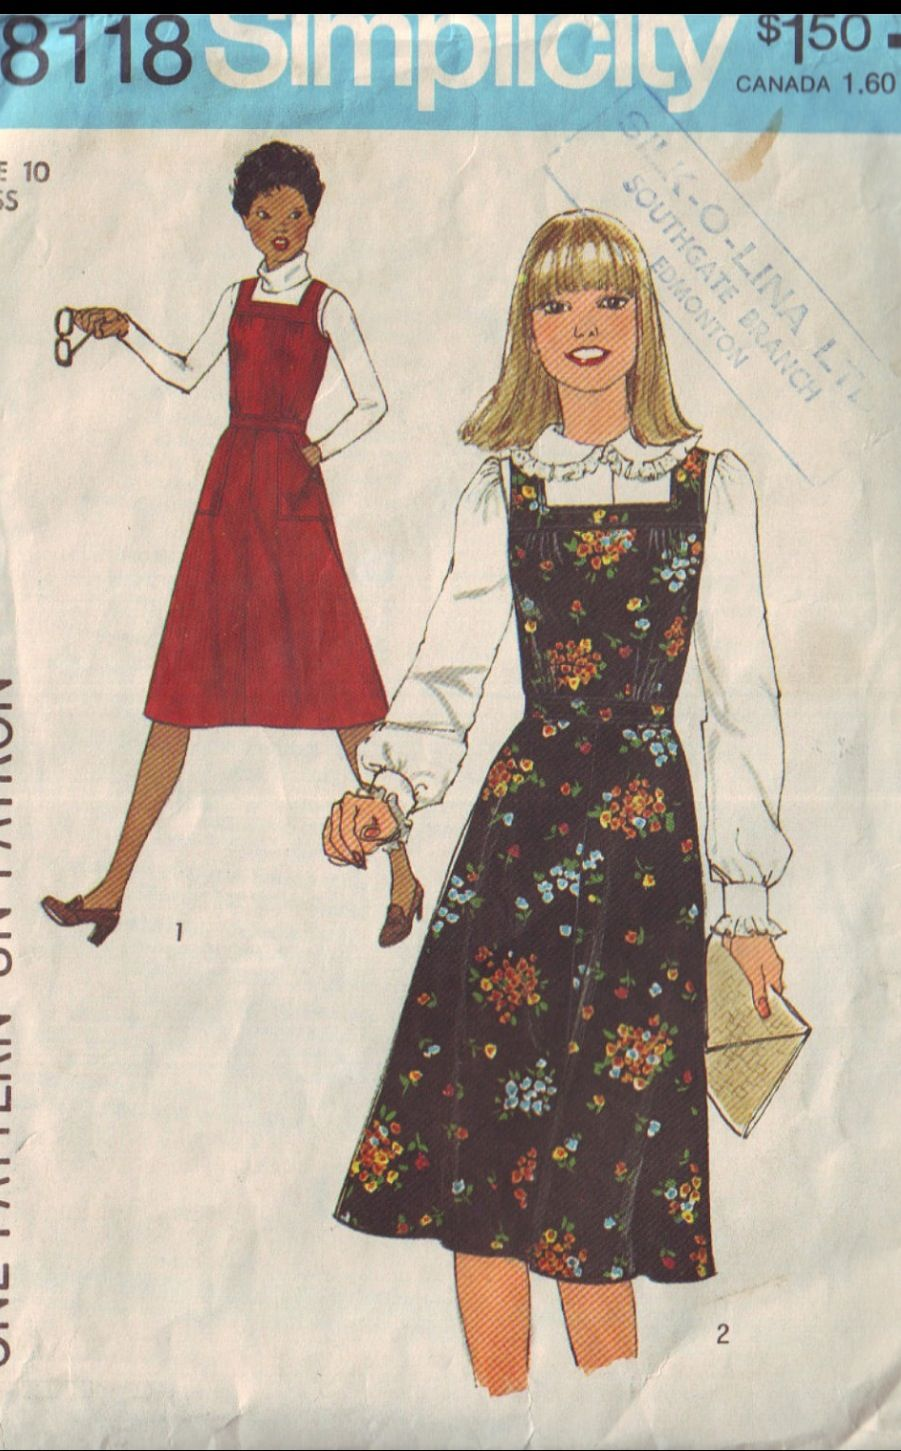 I Remember Going To Scranton Fabrics On The South Side Of Binghamton To Buy Simplicity Patt Simplicity Patterns Dresses Dress Sewing Patterns Square Neck Dress